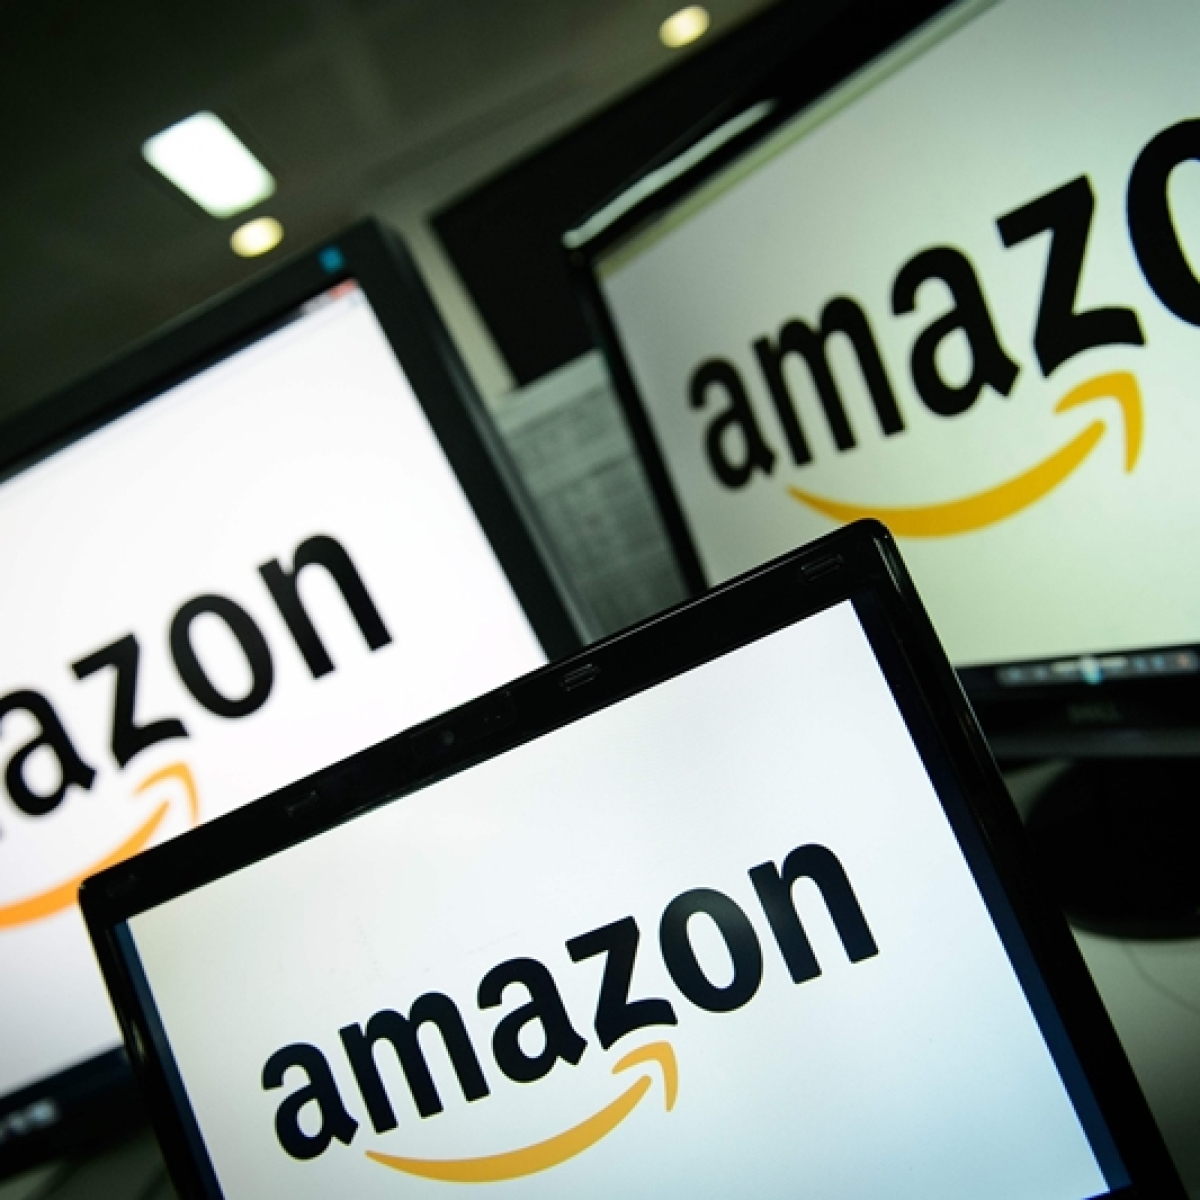 Amazon India to host 'Small Business Day' sale event: Check date, time, offers here